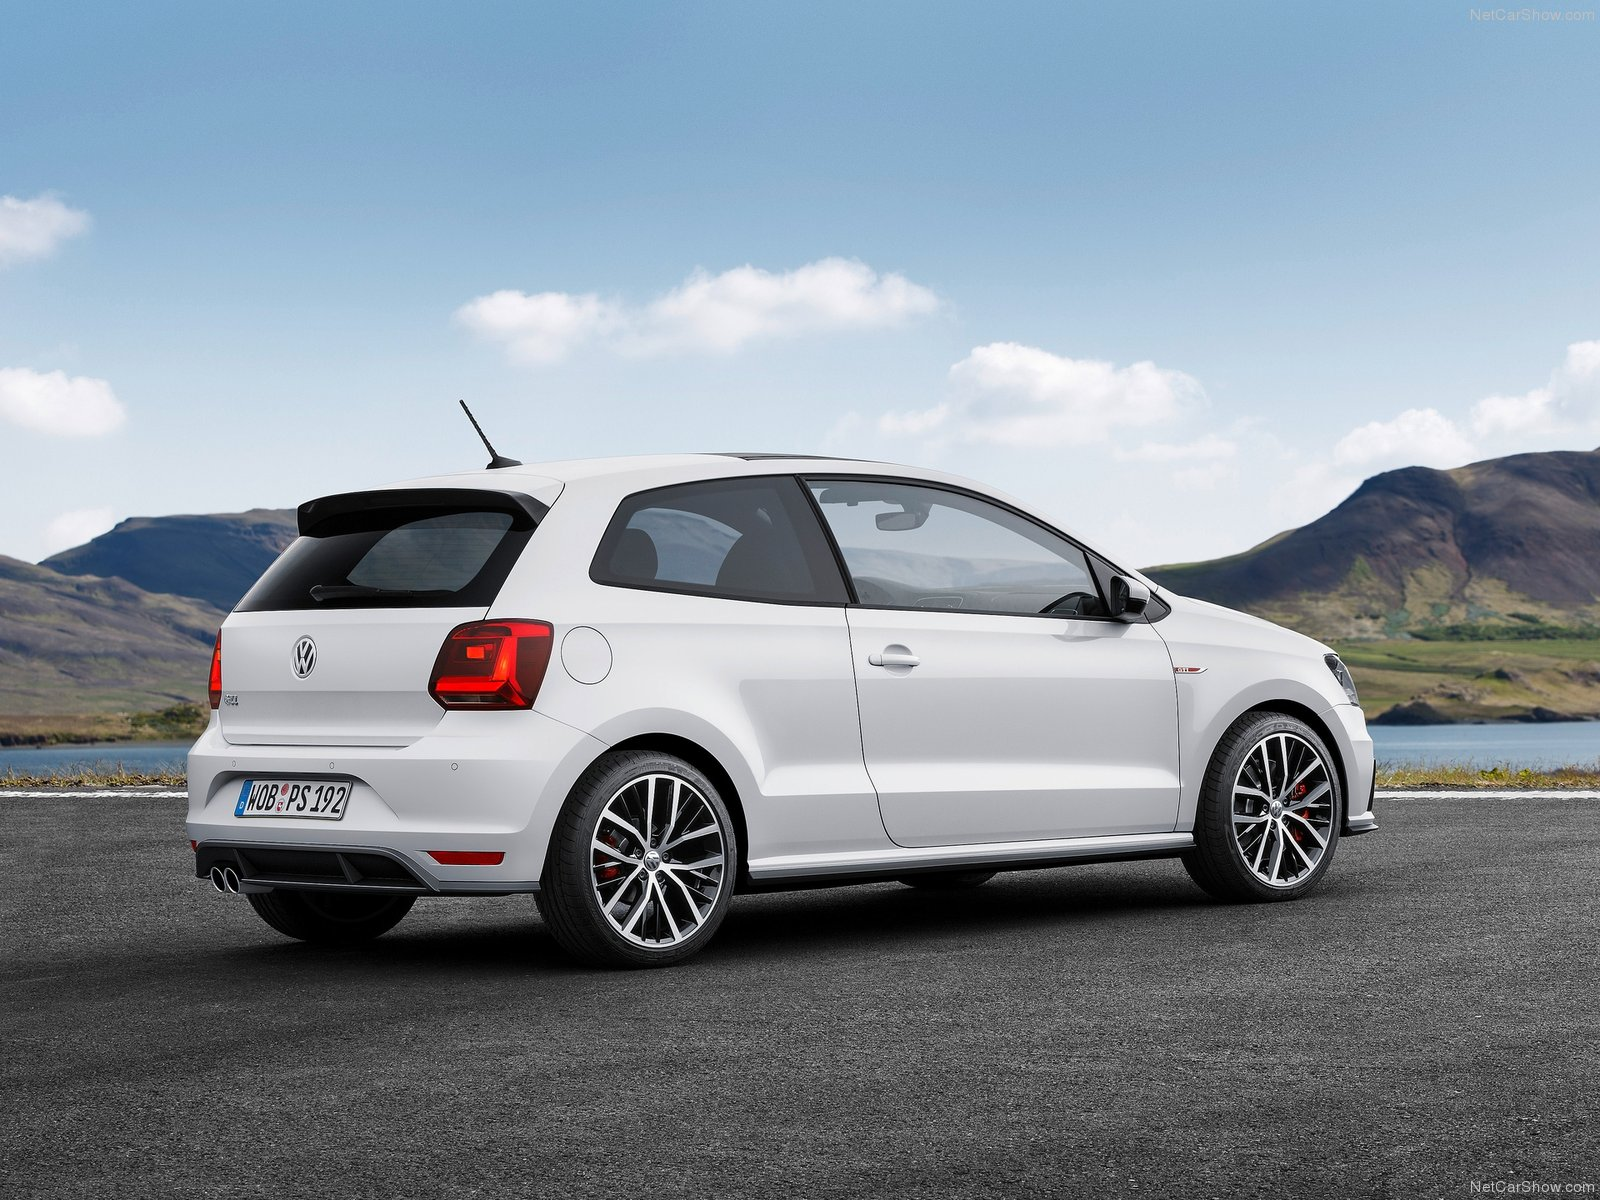 Volkswagen Polo Gti Photos Photogallery With 52 Pics